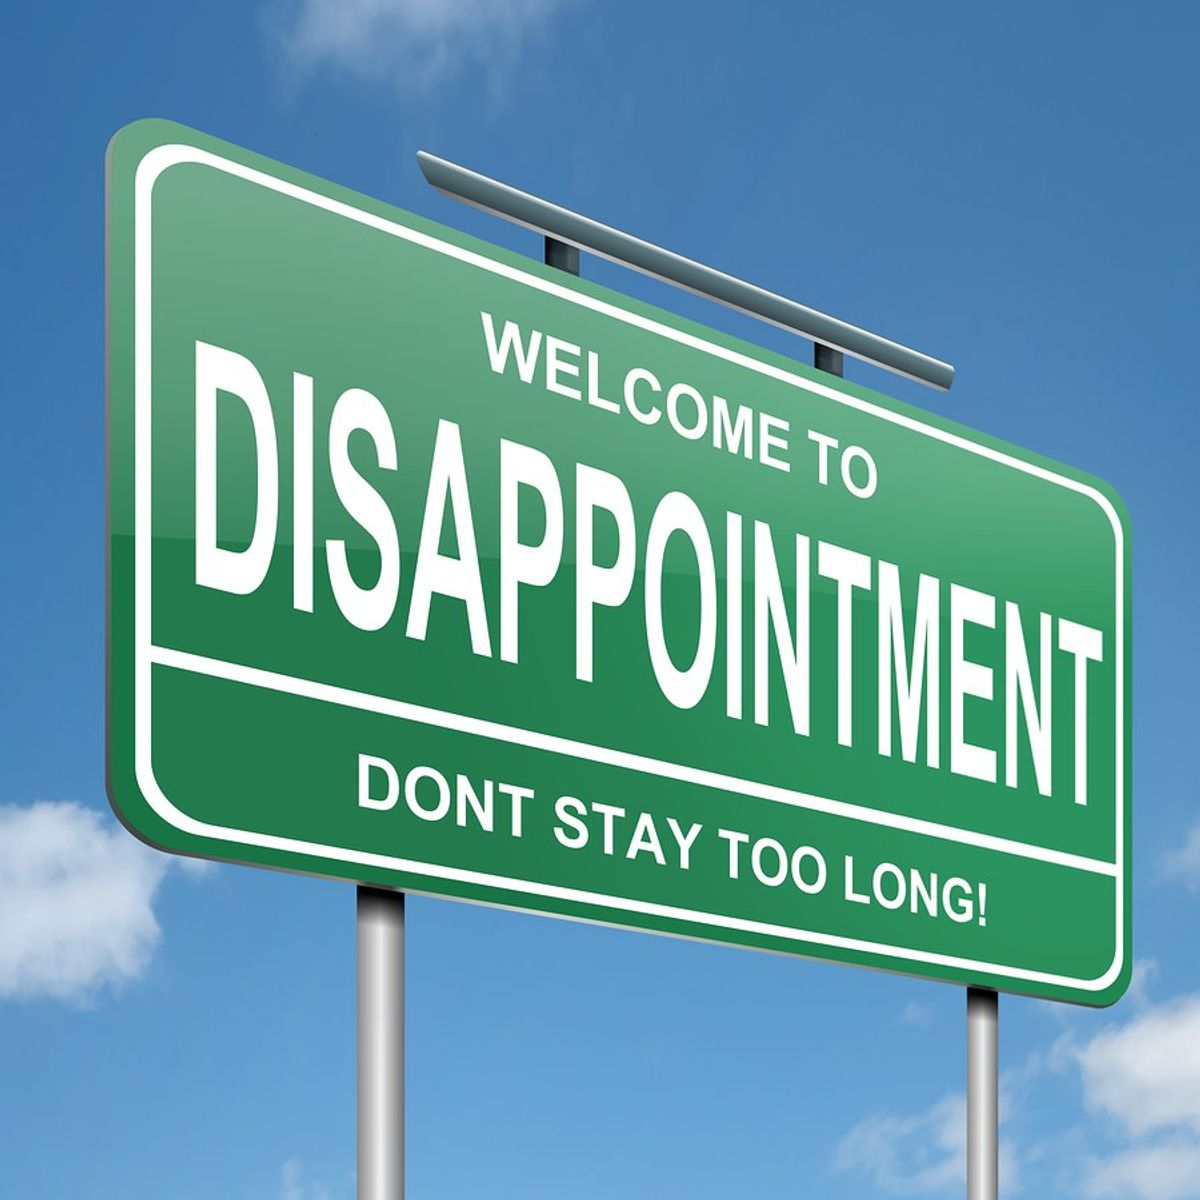 5 Tips To Handle Disappointment